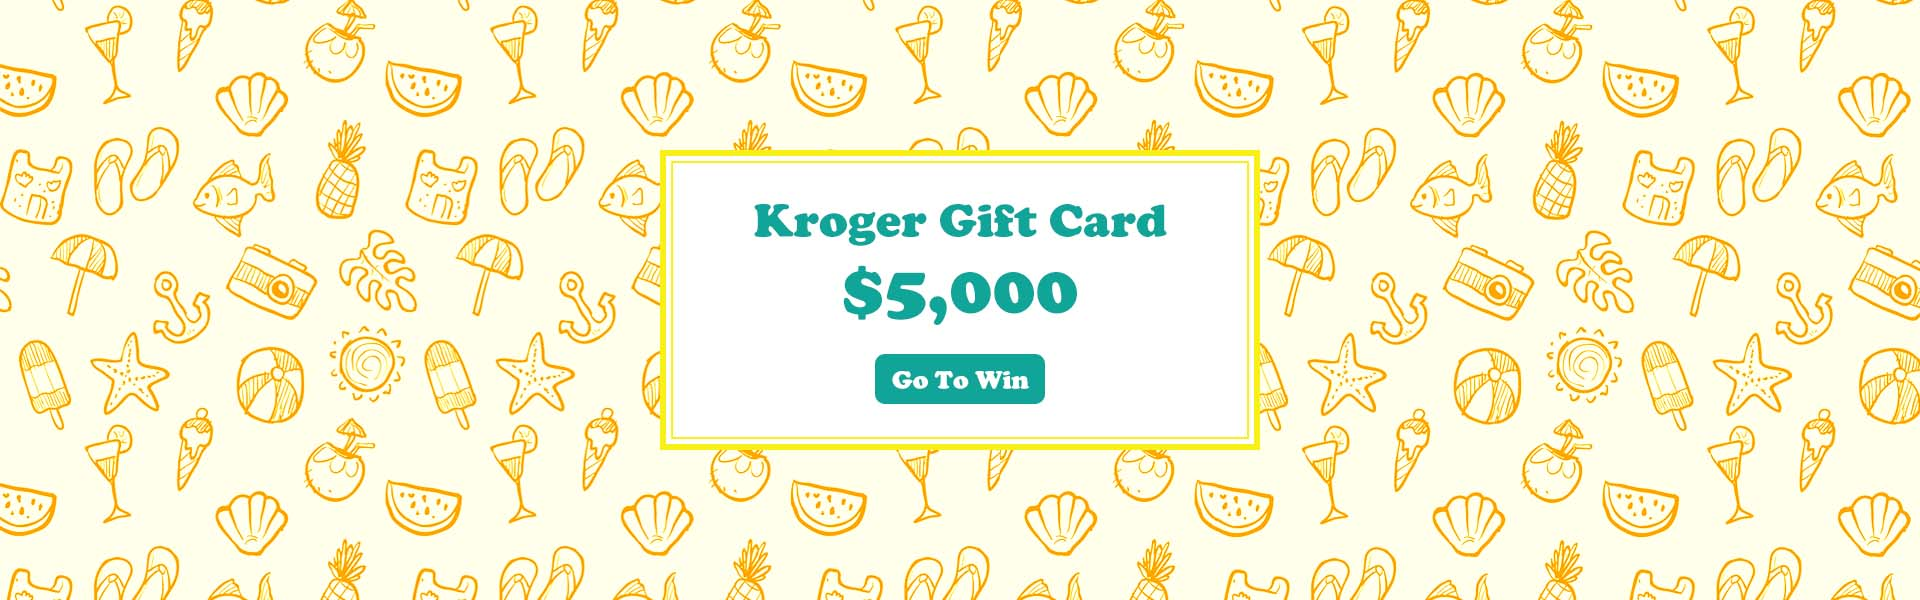 www.tellkroger.com - Kroger Customer Satisfaction Survey $5,000 in Kroger Gift Card